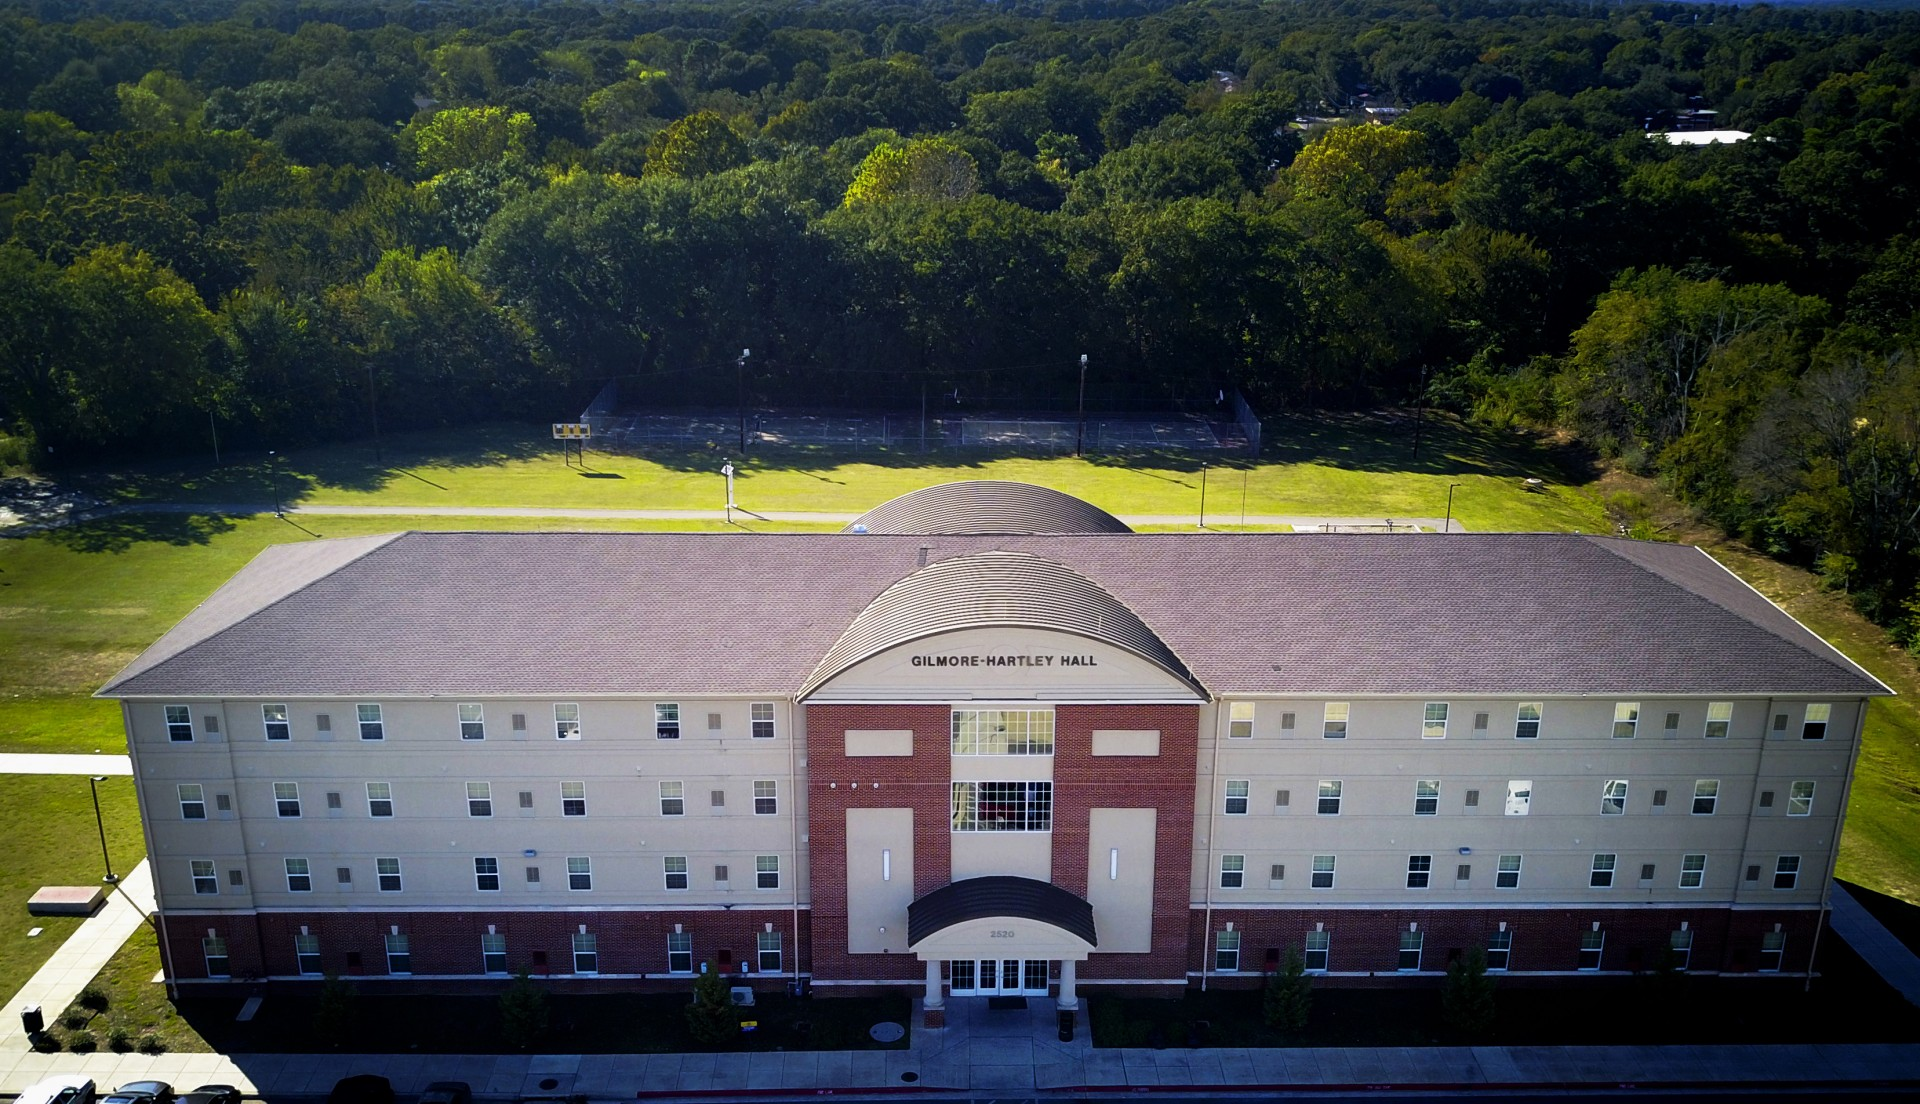 Pictured is Gilmore-Hartley Hall, a four story residence hall.